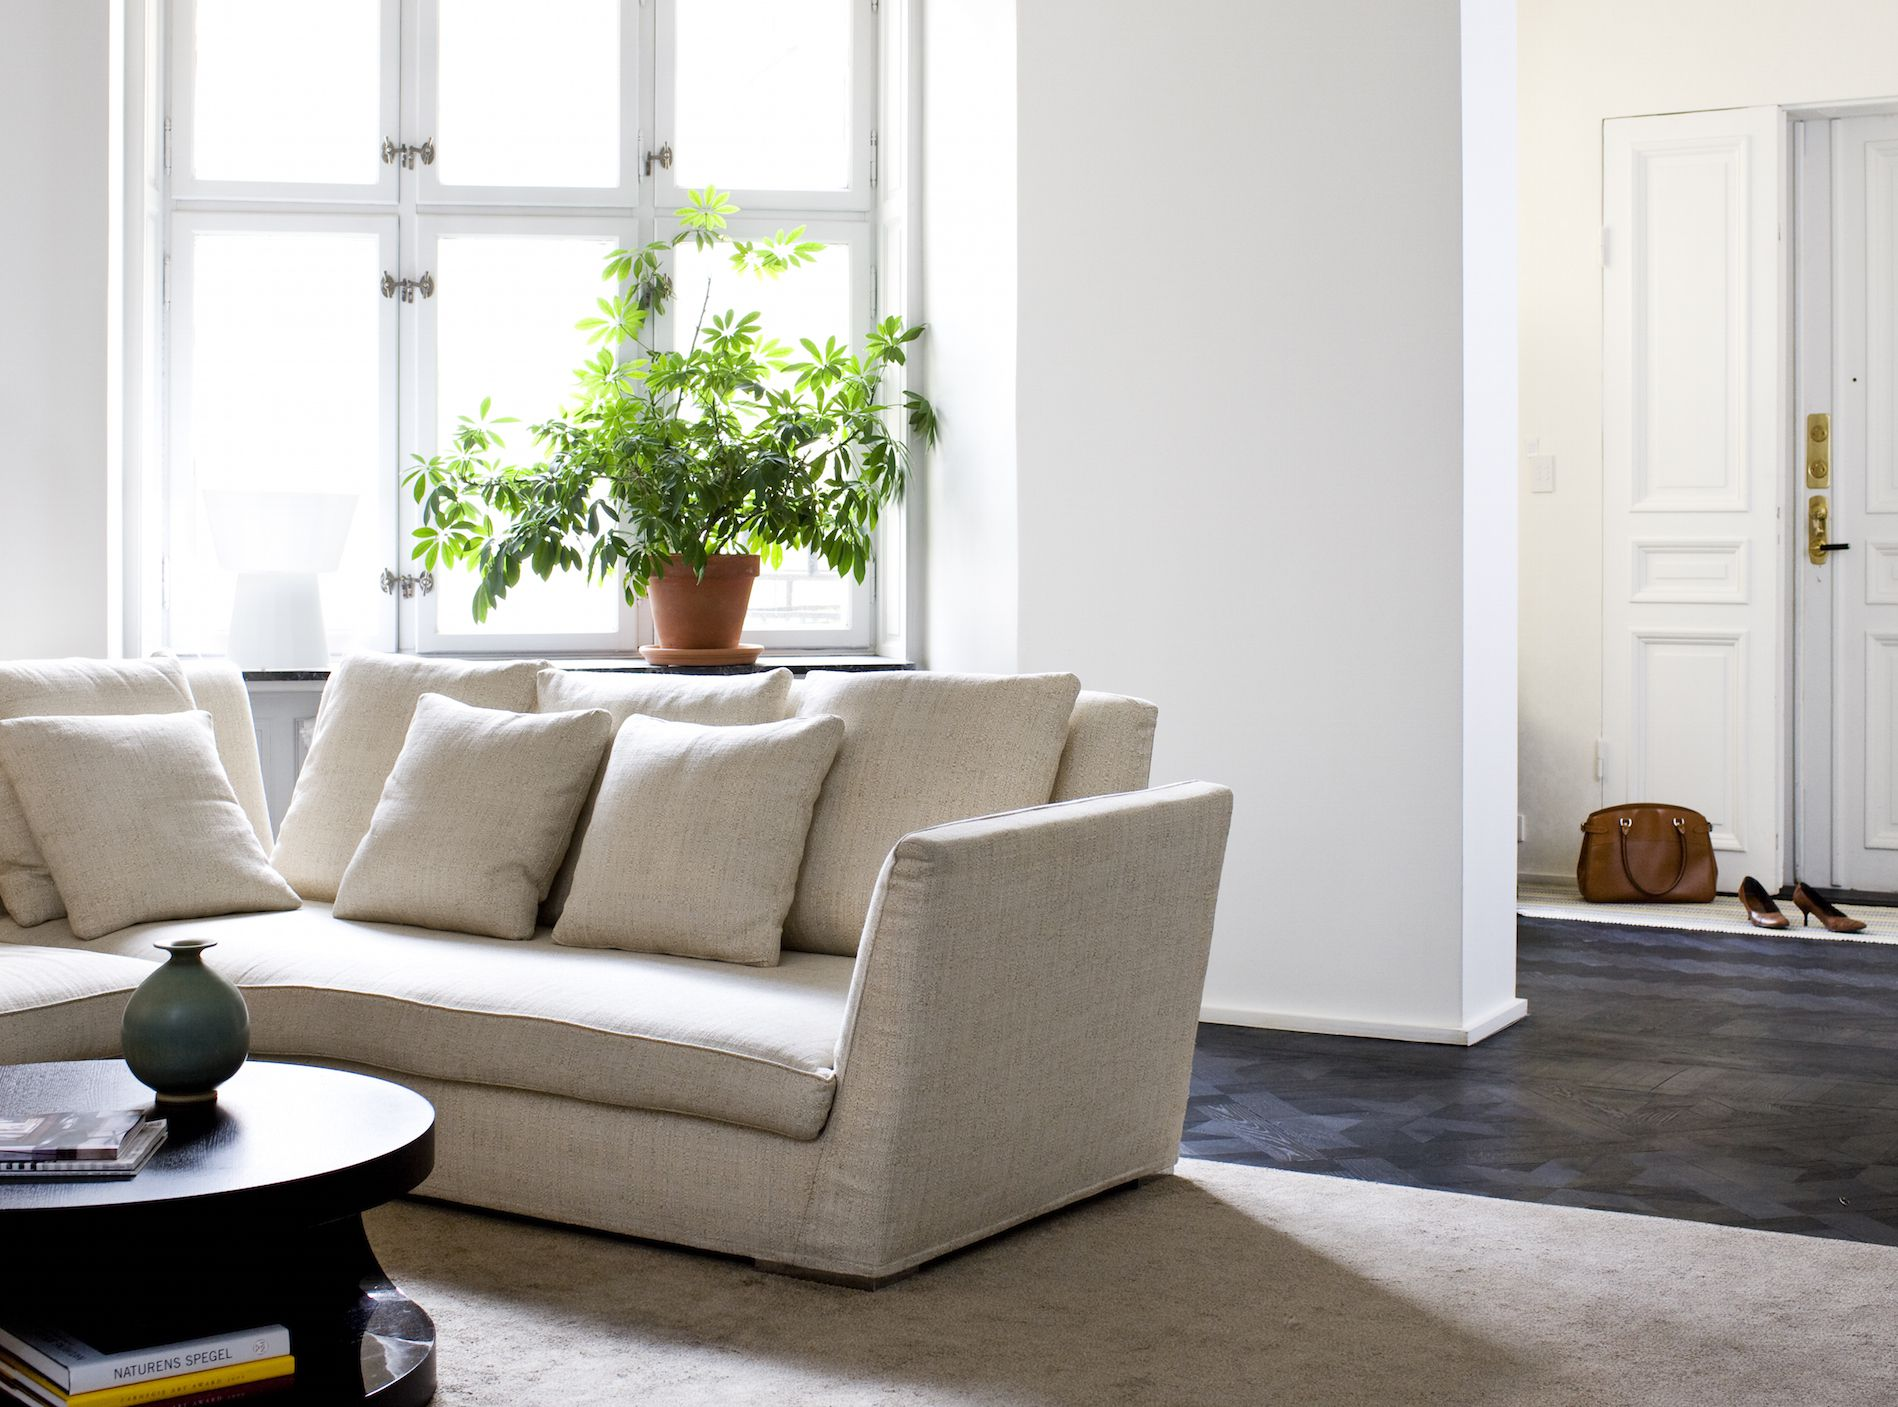 what makes a good feng shui house